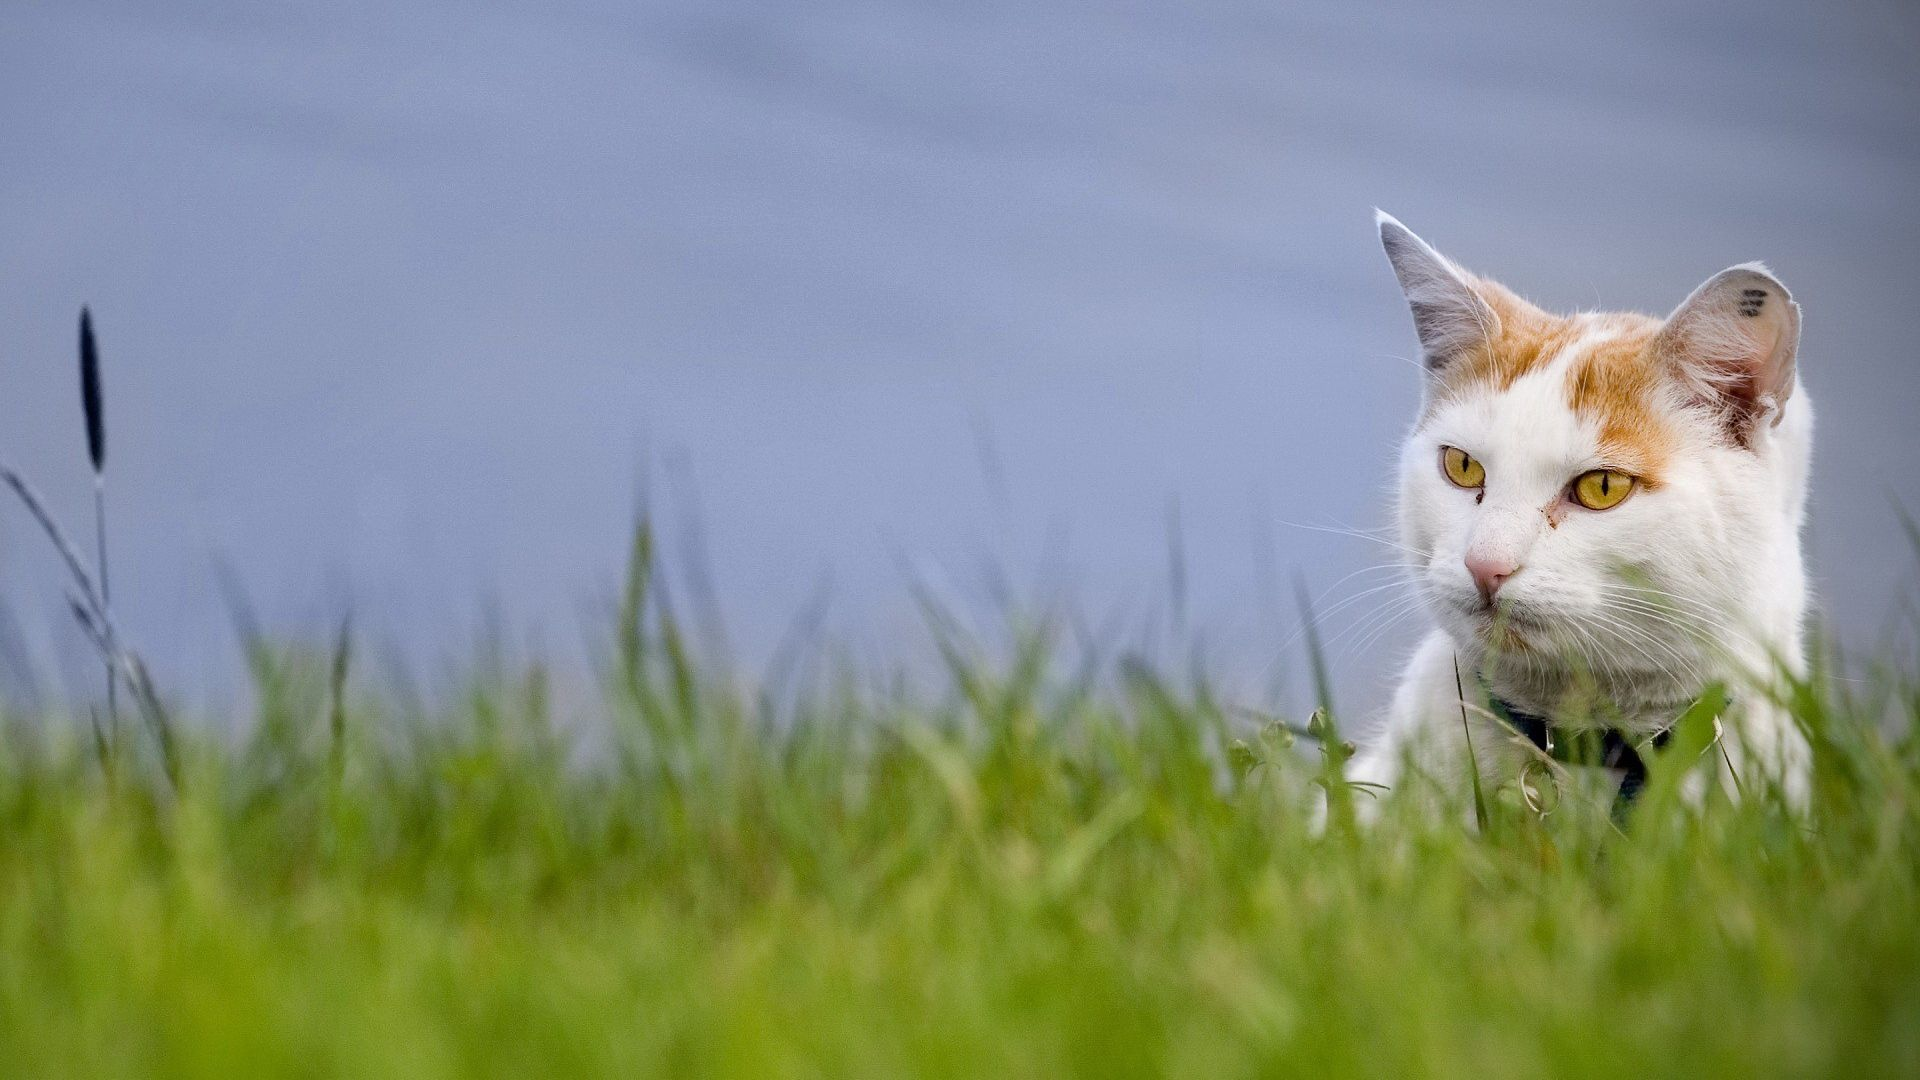 125936 download wallpaper Animals, Cat, Muzzle, Spotted, Spotty, Grass, Peek Out, Look Out screensavers and pictures for free